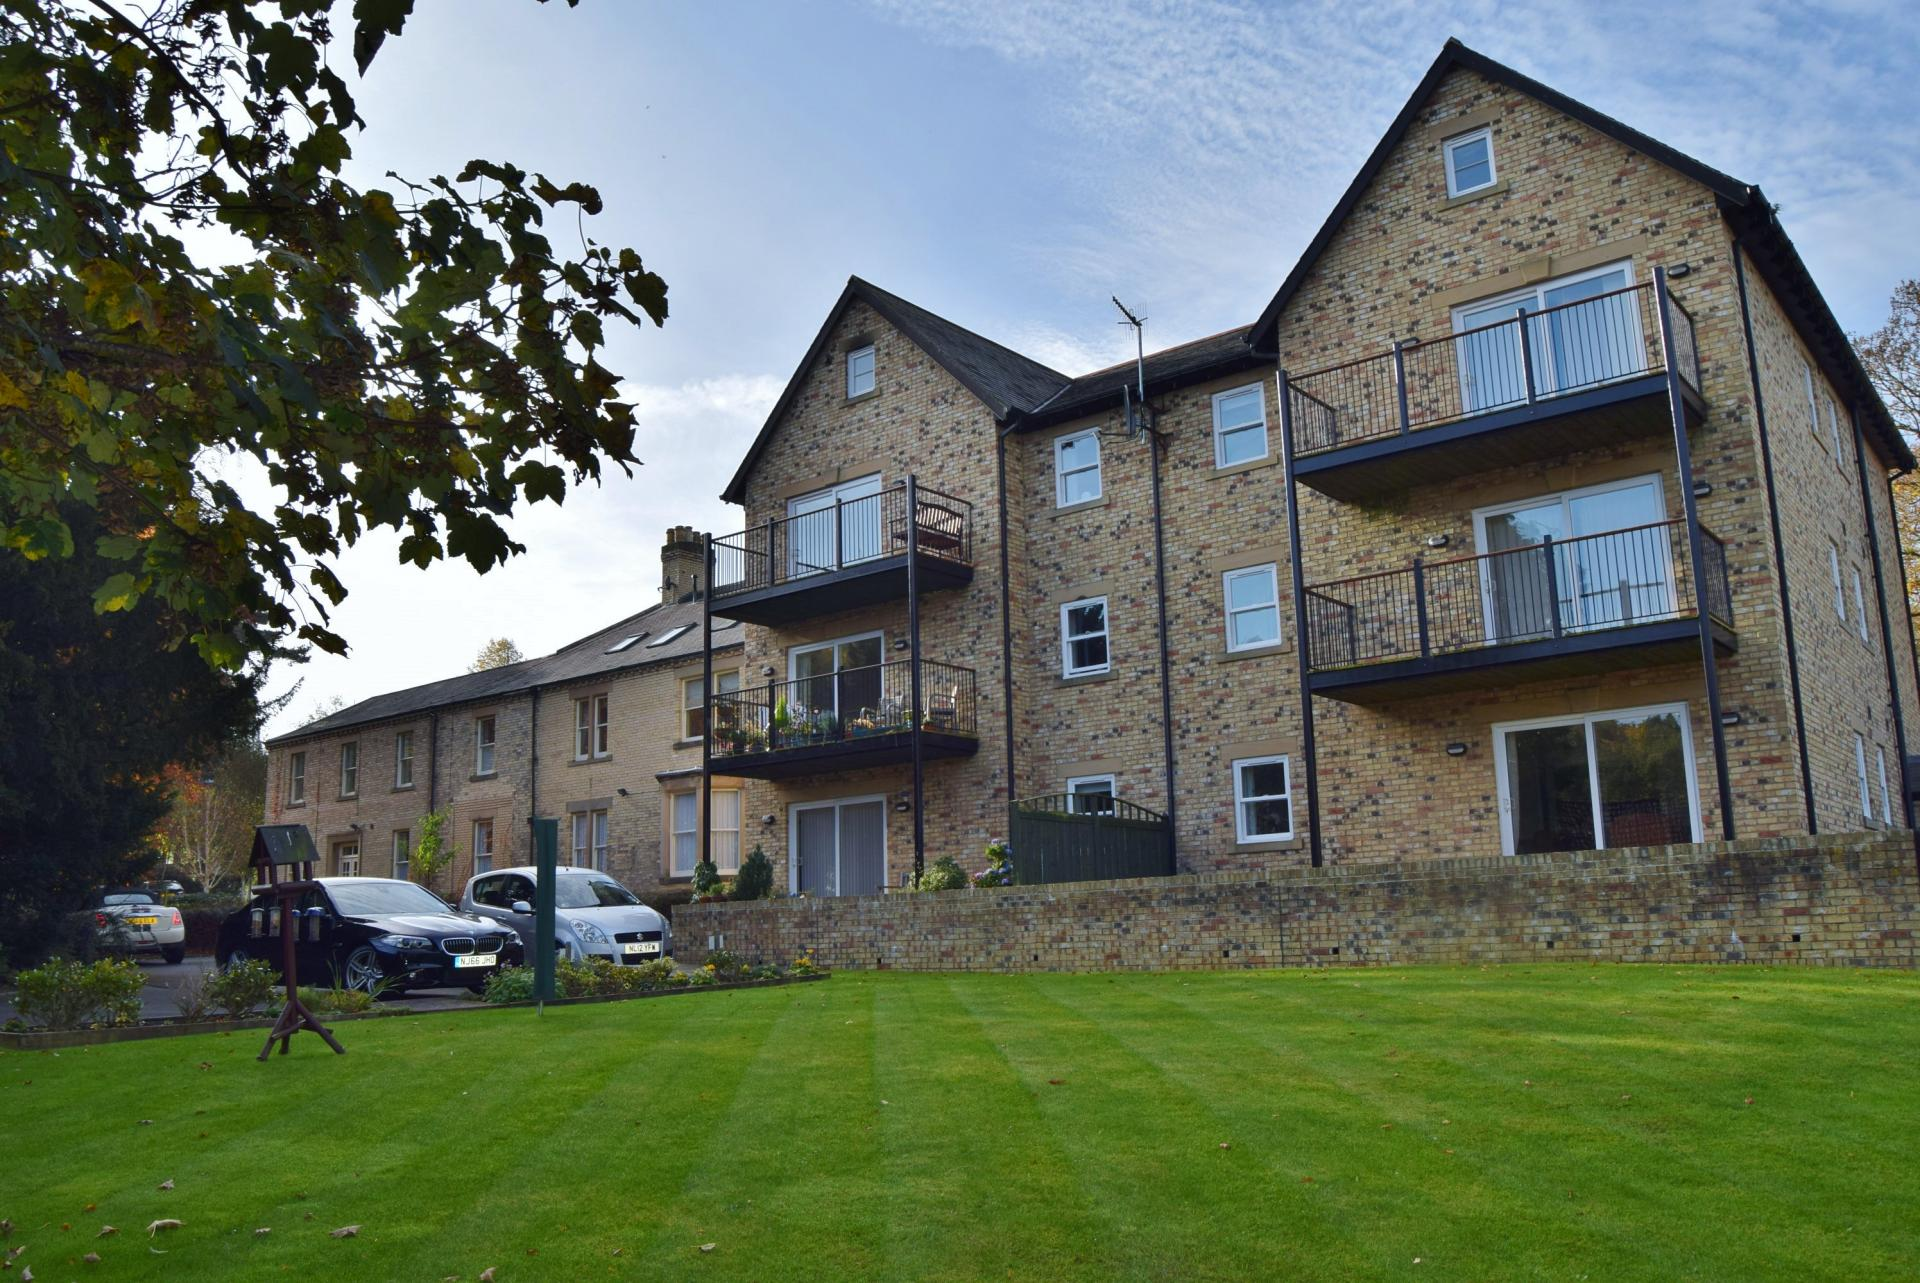 4 Bedrooms Studio Flat for sale in Holly Court, South Park, Hexham